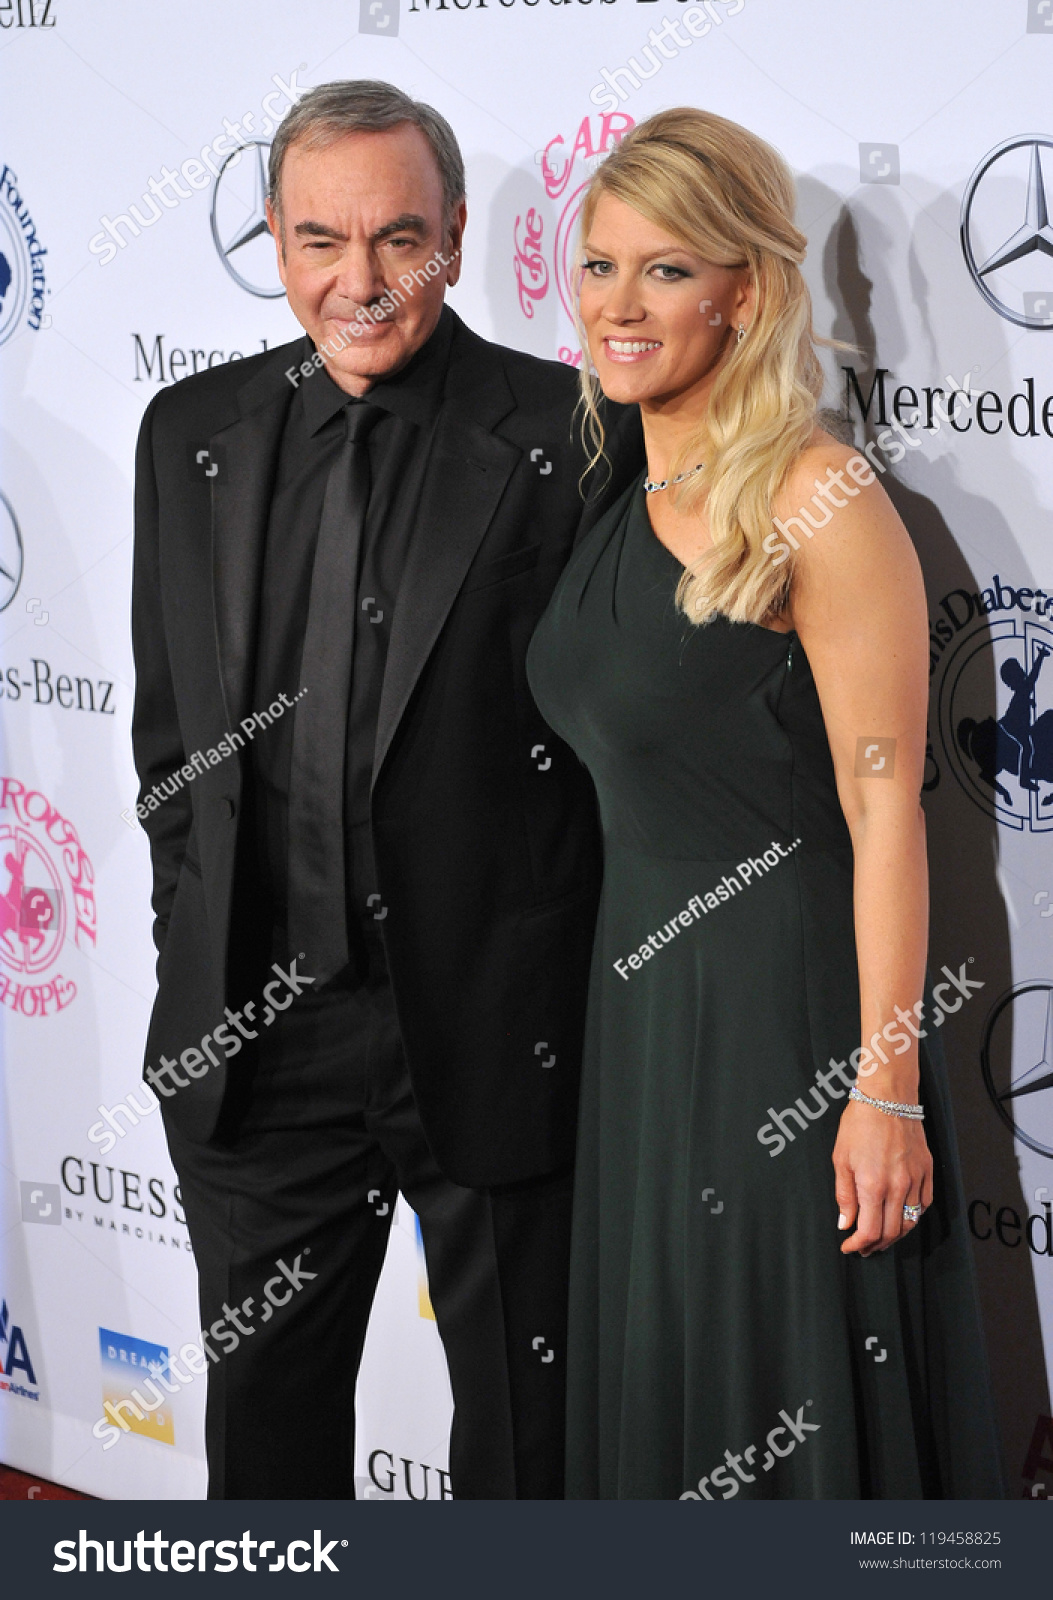 mc neil dating Neil diamond in 2018: still married to his wife katie mcneil how rich is he does neil diamond have tattoos does he smoke + body measurements & other facts.